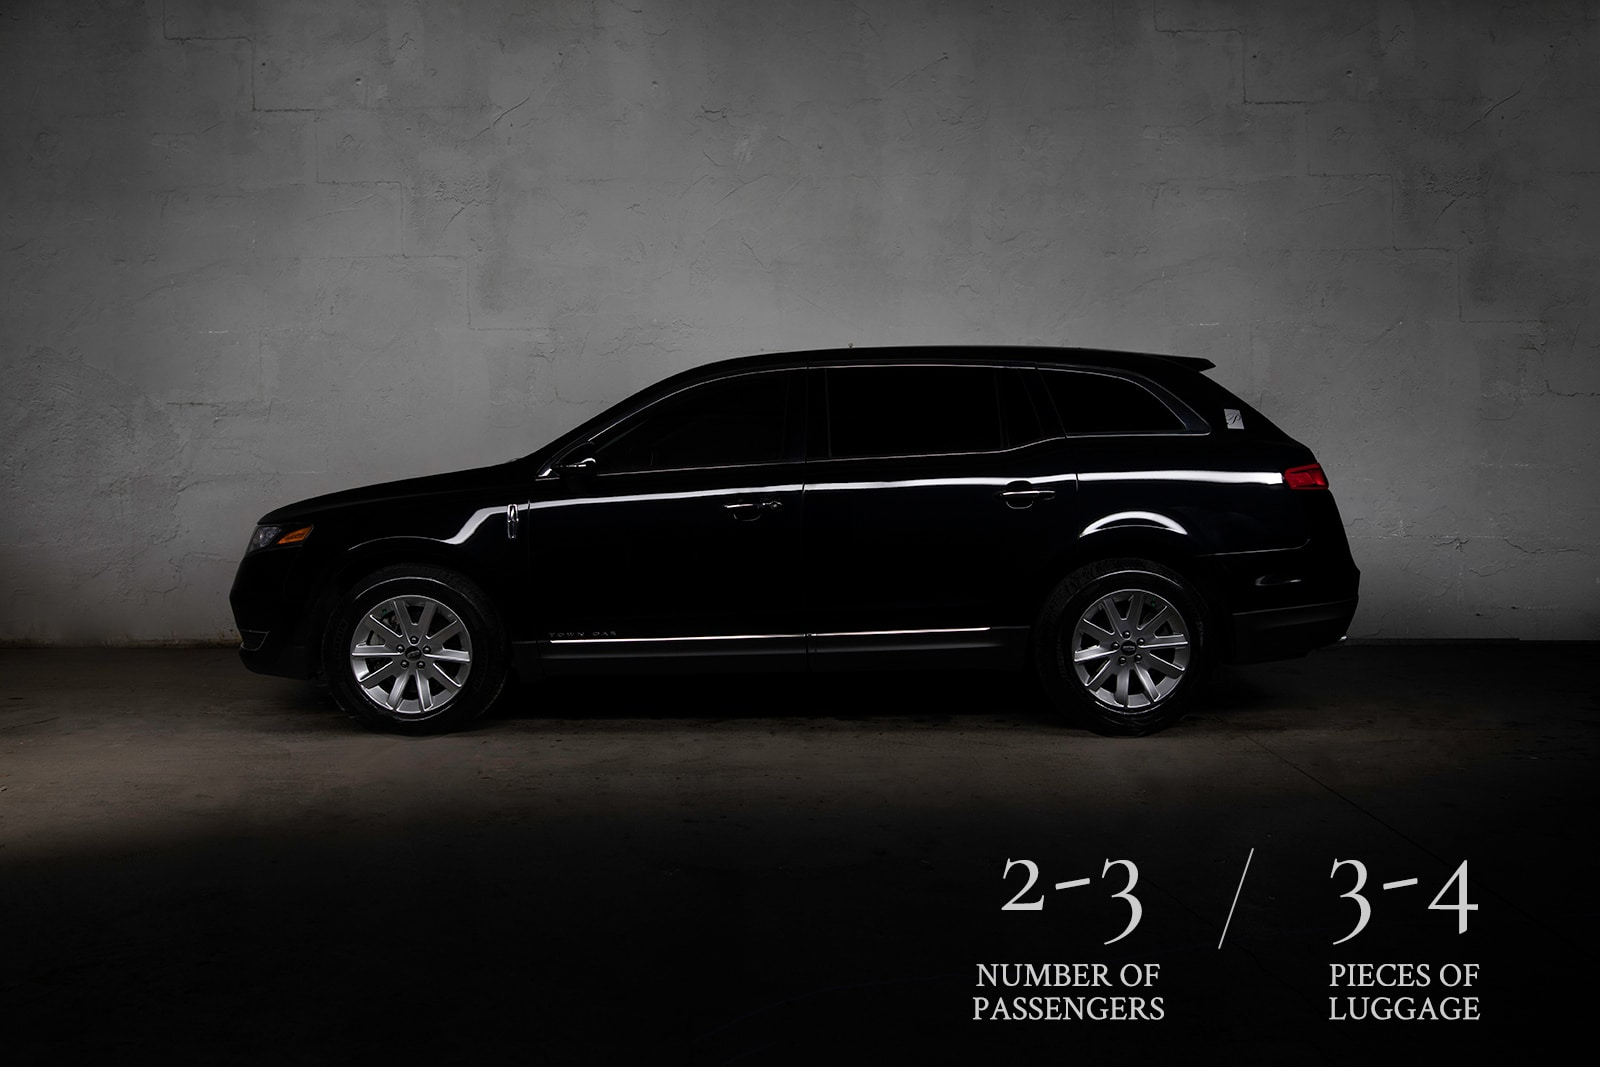 Lincoln MKT used for Airport Transportation.